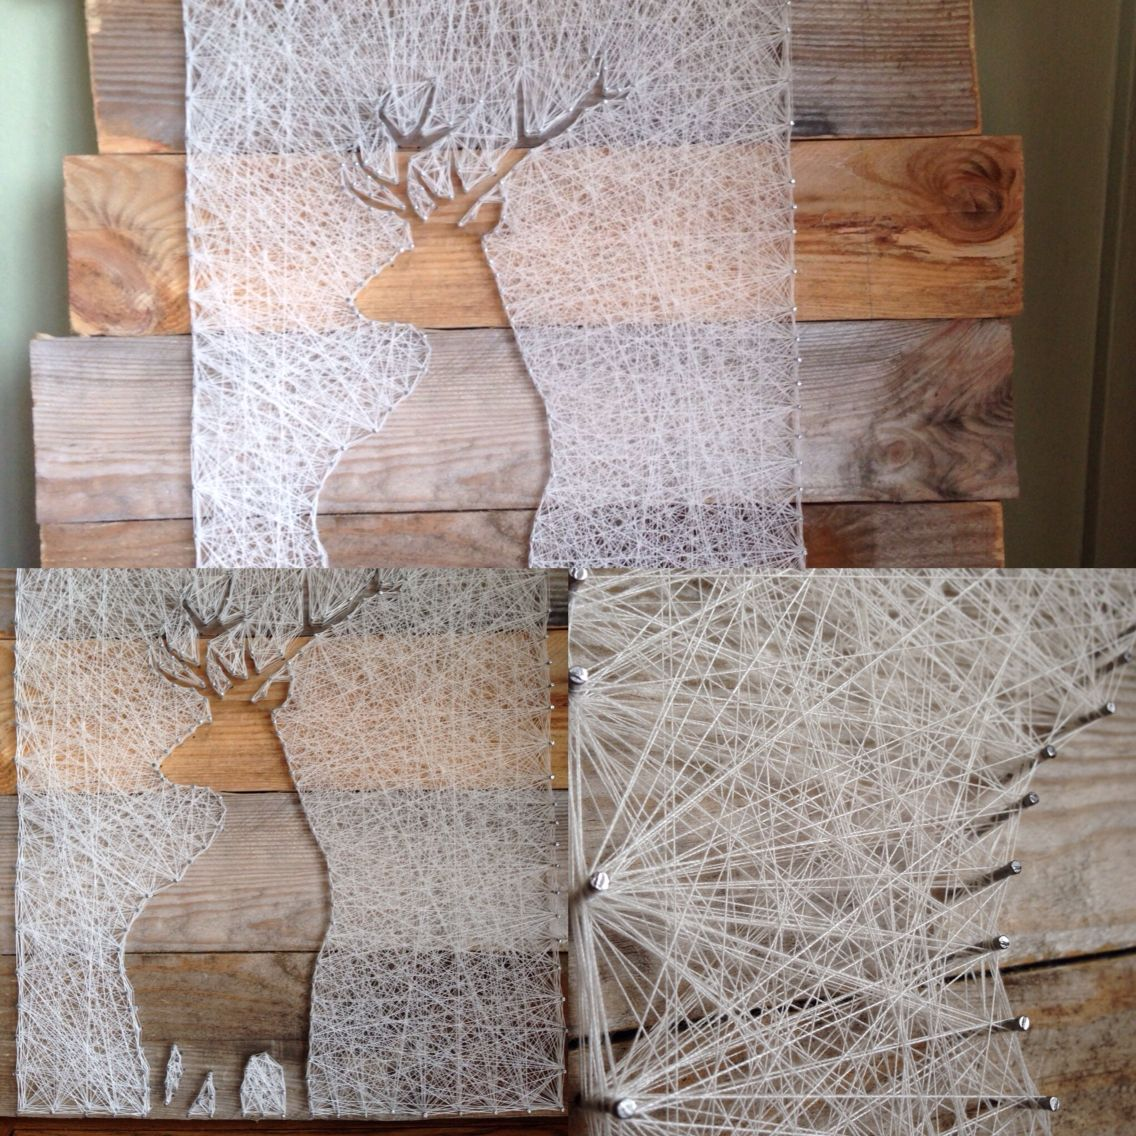 Just finished my new wood nail thread art piece the stag just finished my new wood nail thread art piece the stag prinsesfo Images